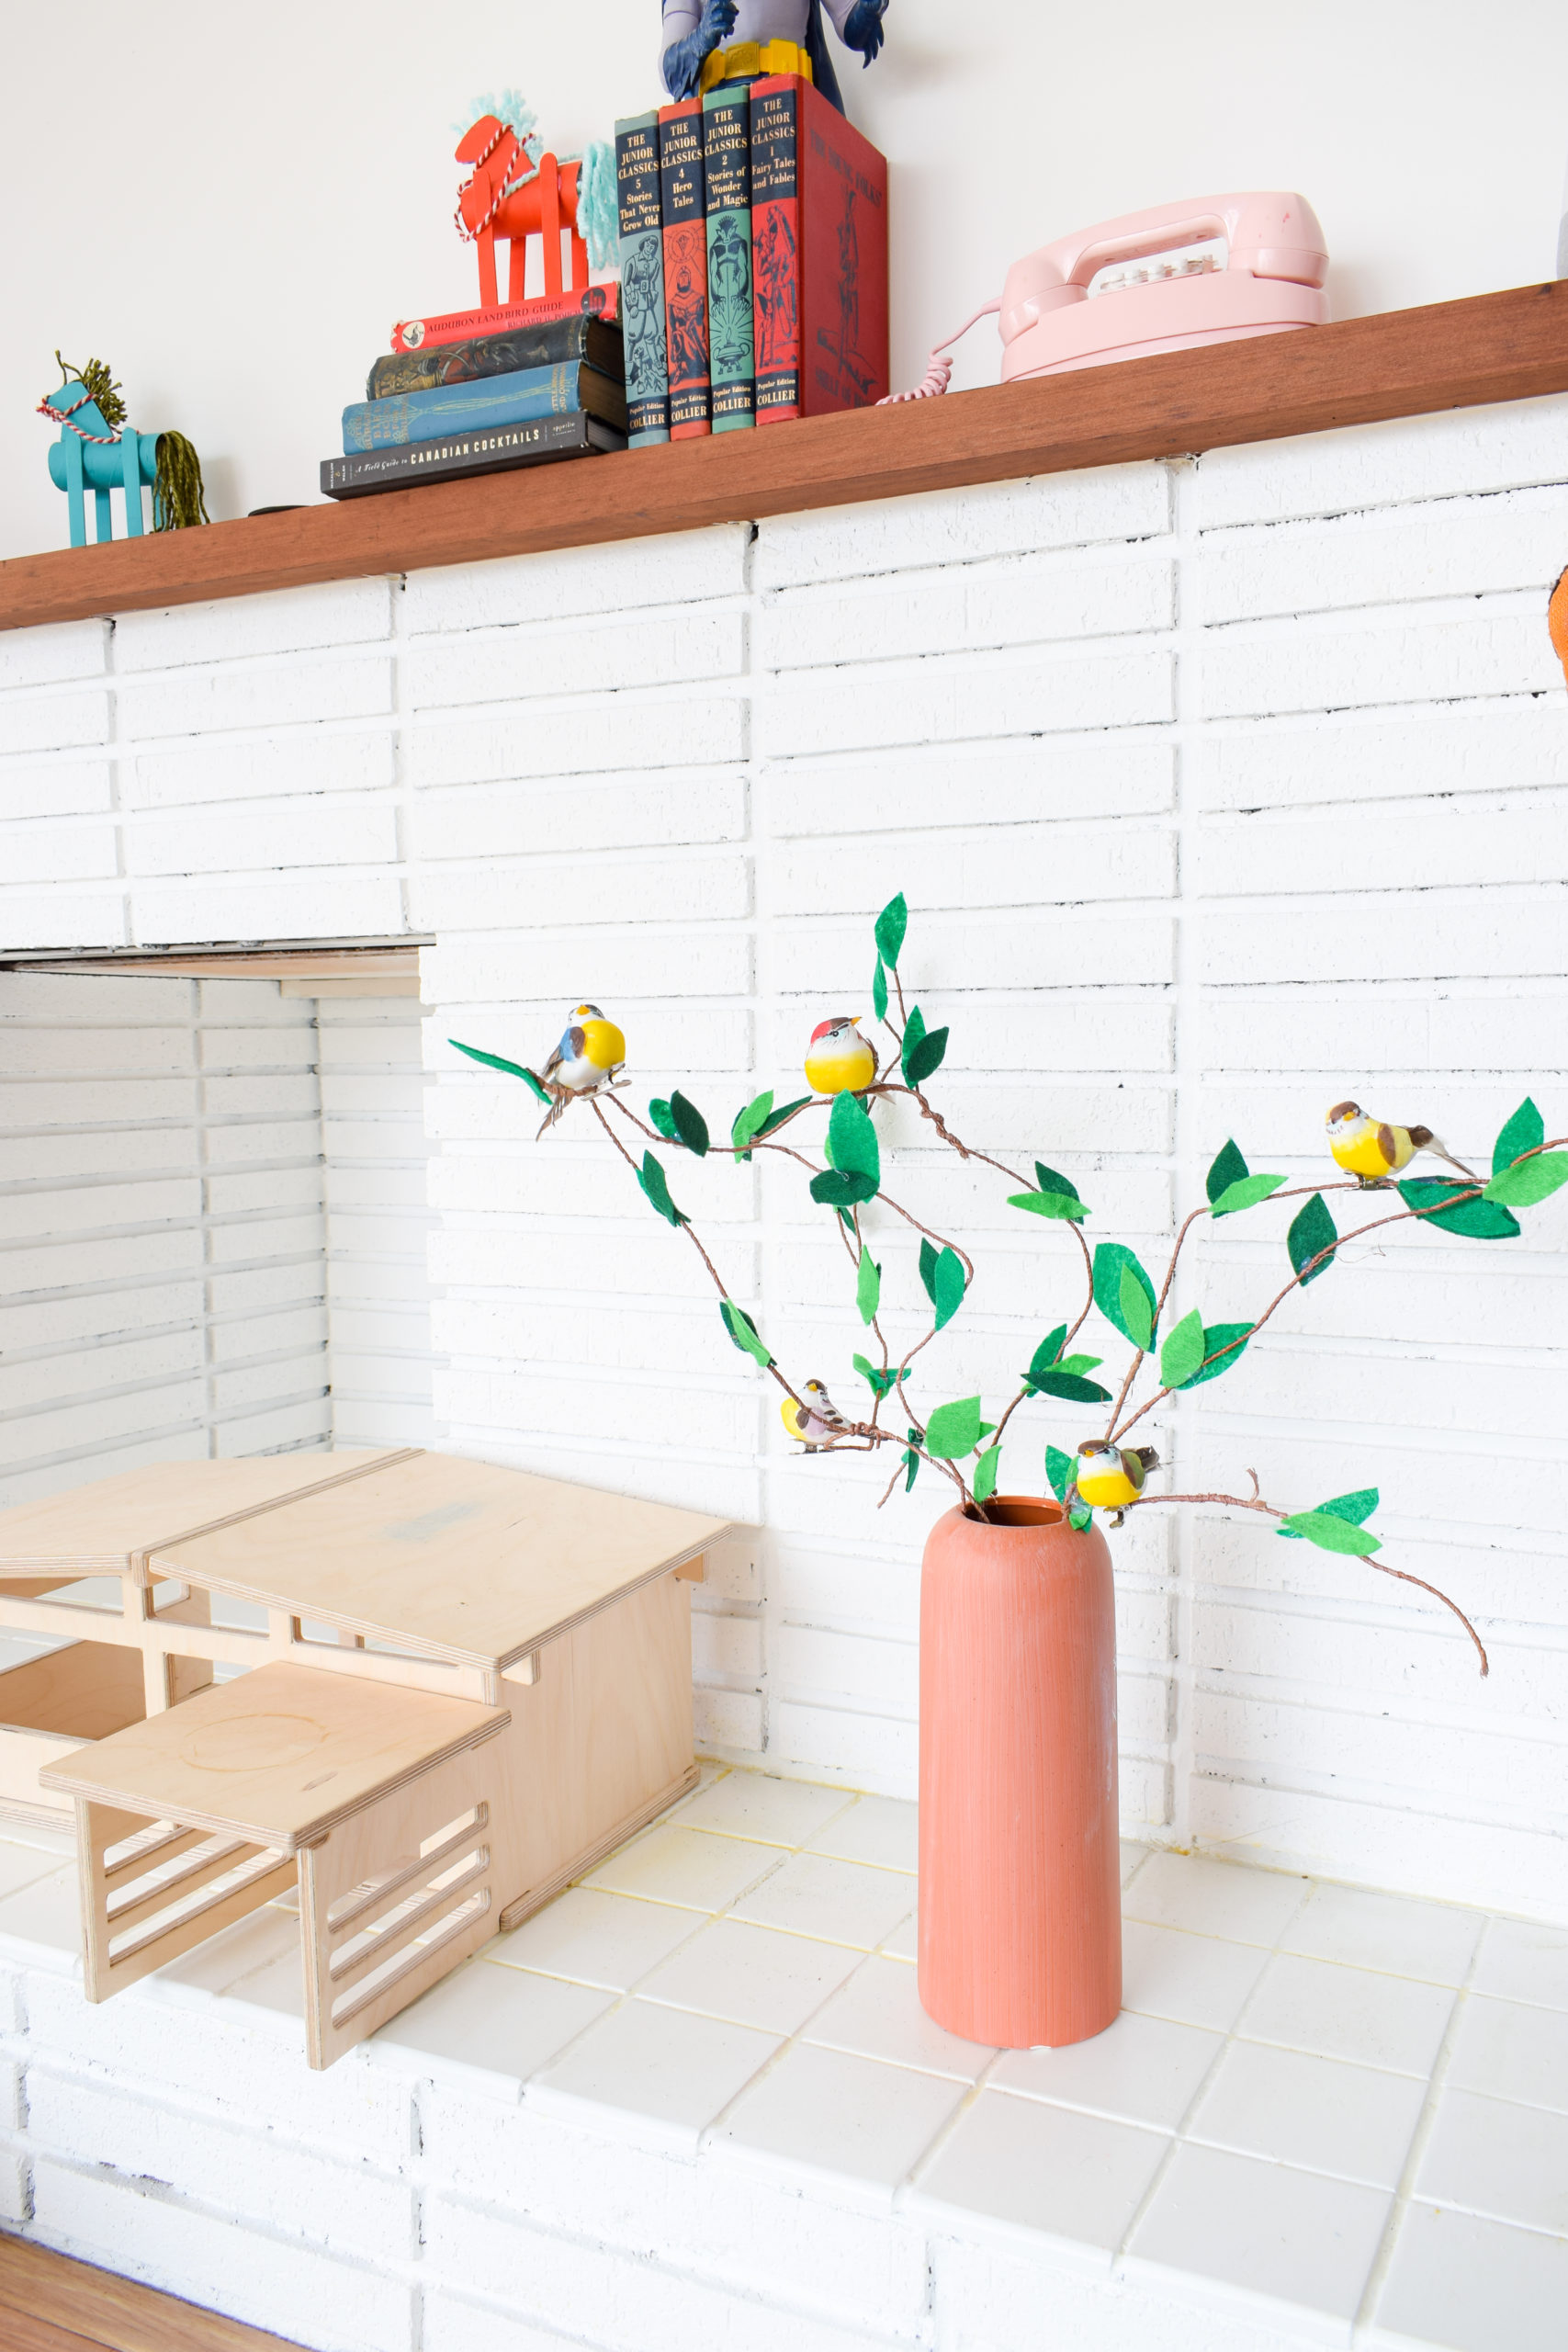 Create a toddler friendly spring arrangement using crafting wire, felt, and some little birds. Don't forget the perfect crafting scissors too!